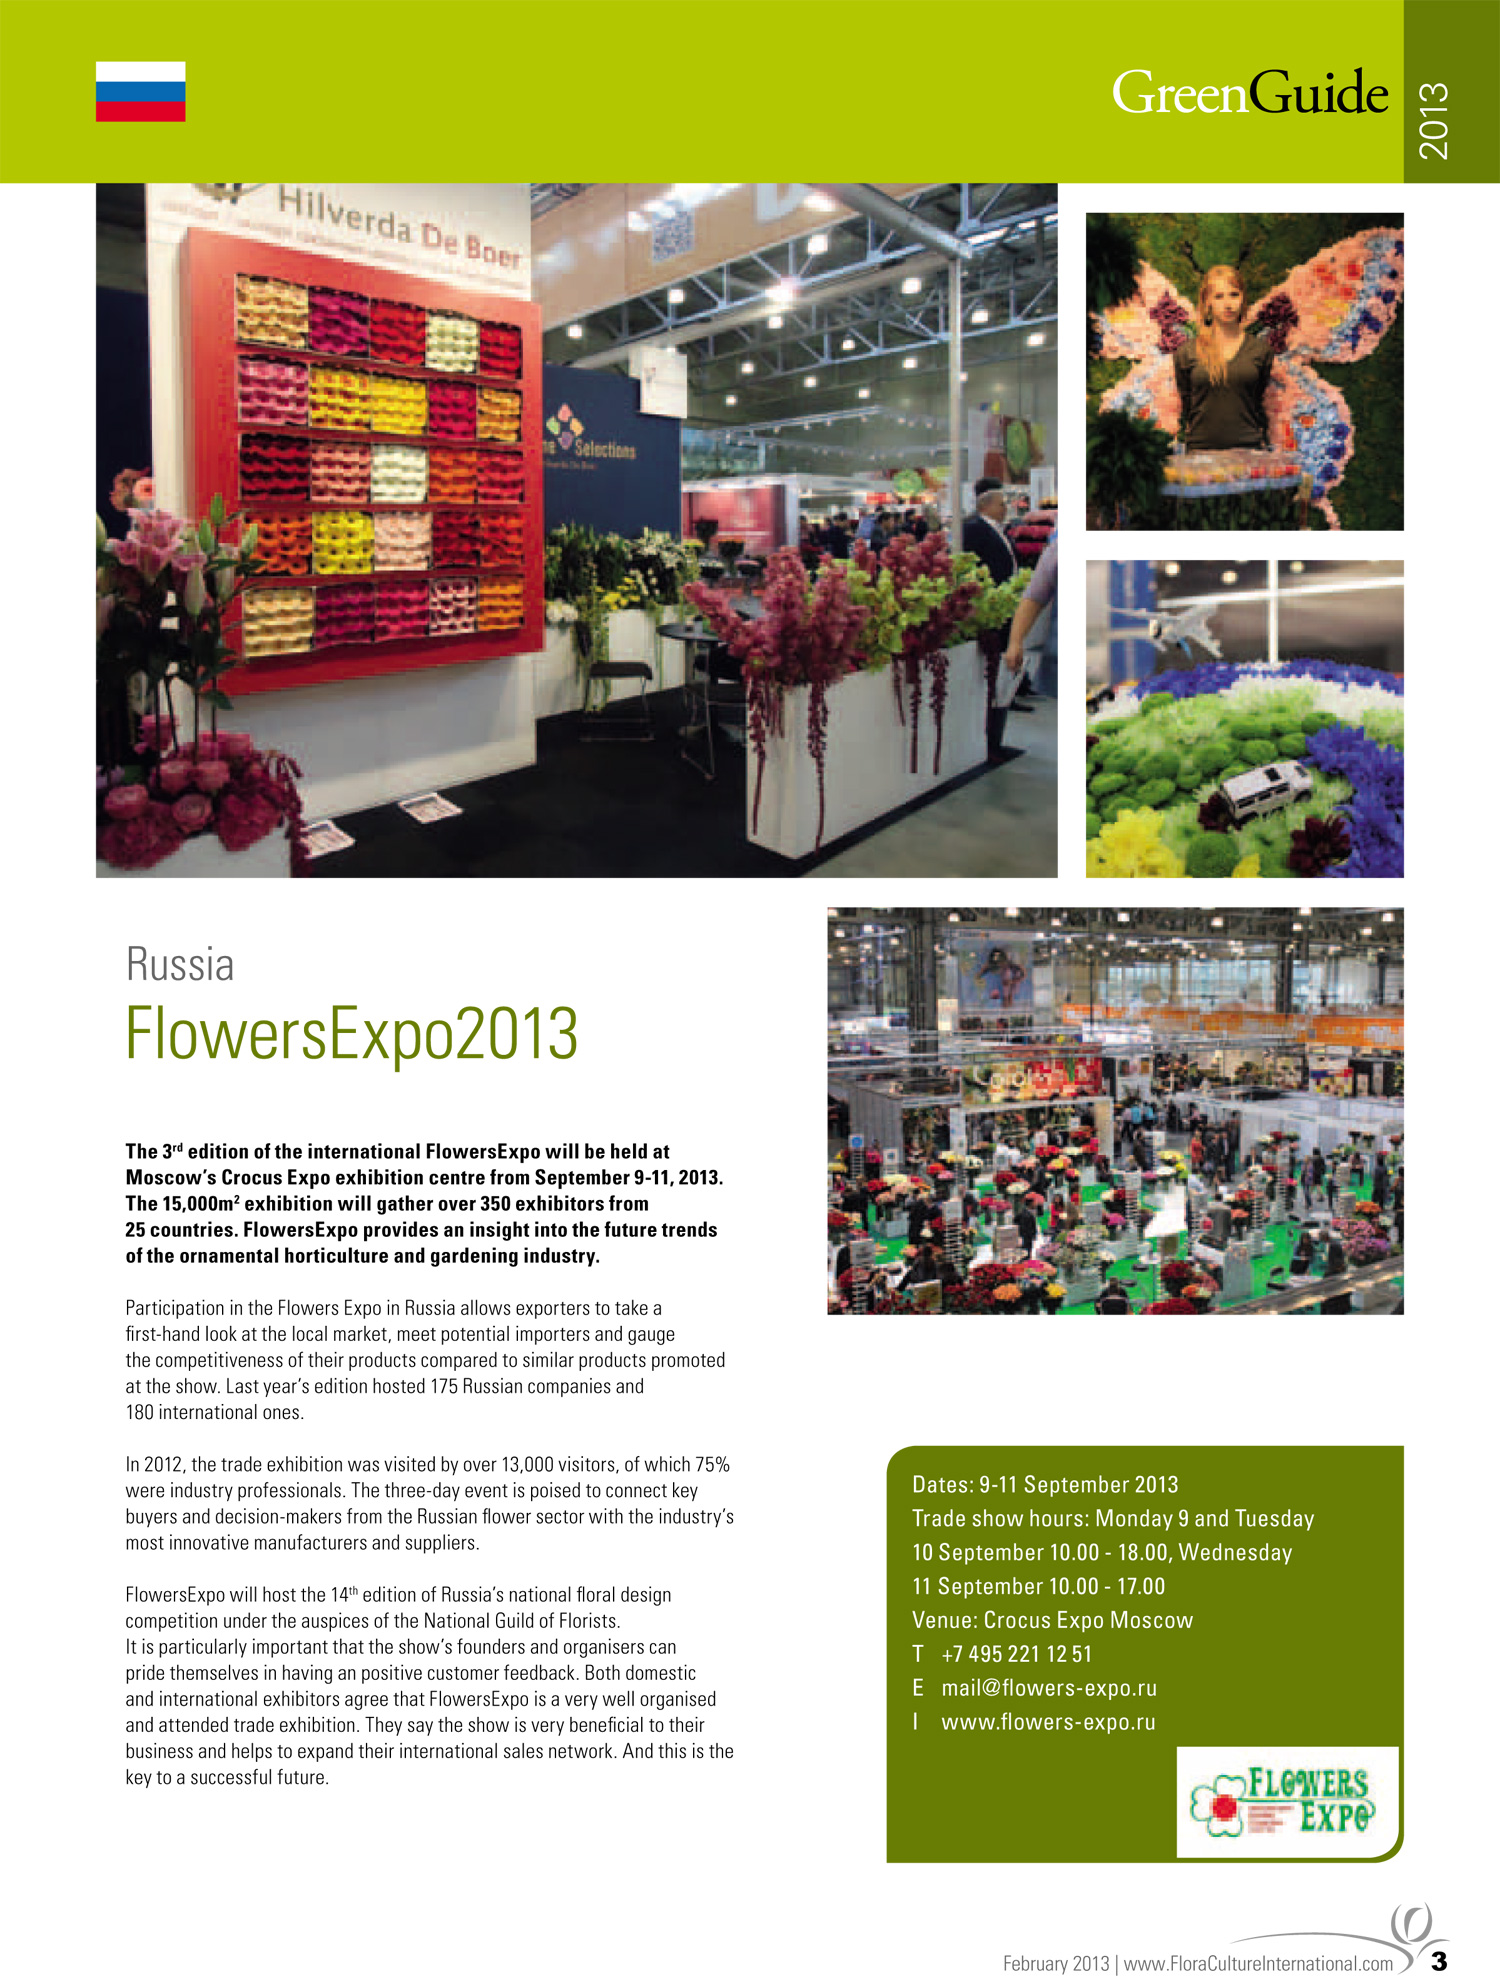 Press about us - FlowersExpo - Exhibitions - English - Flowers-Expo ru